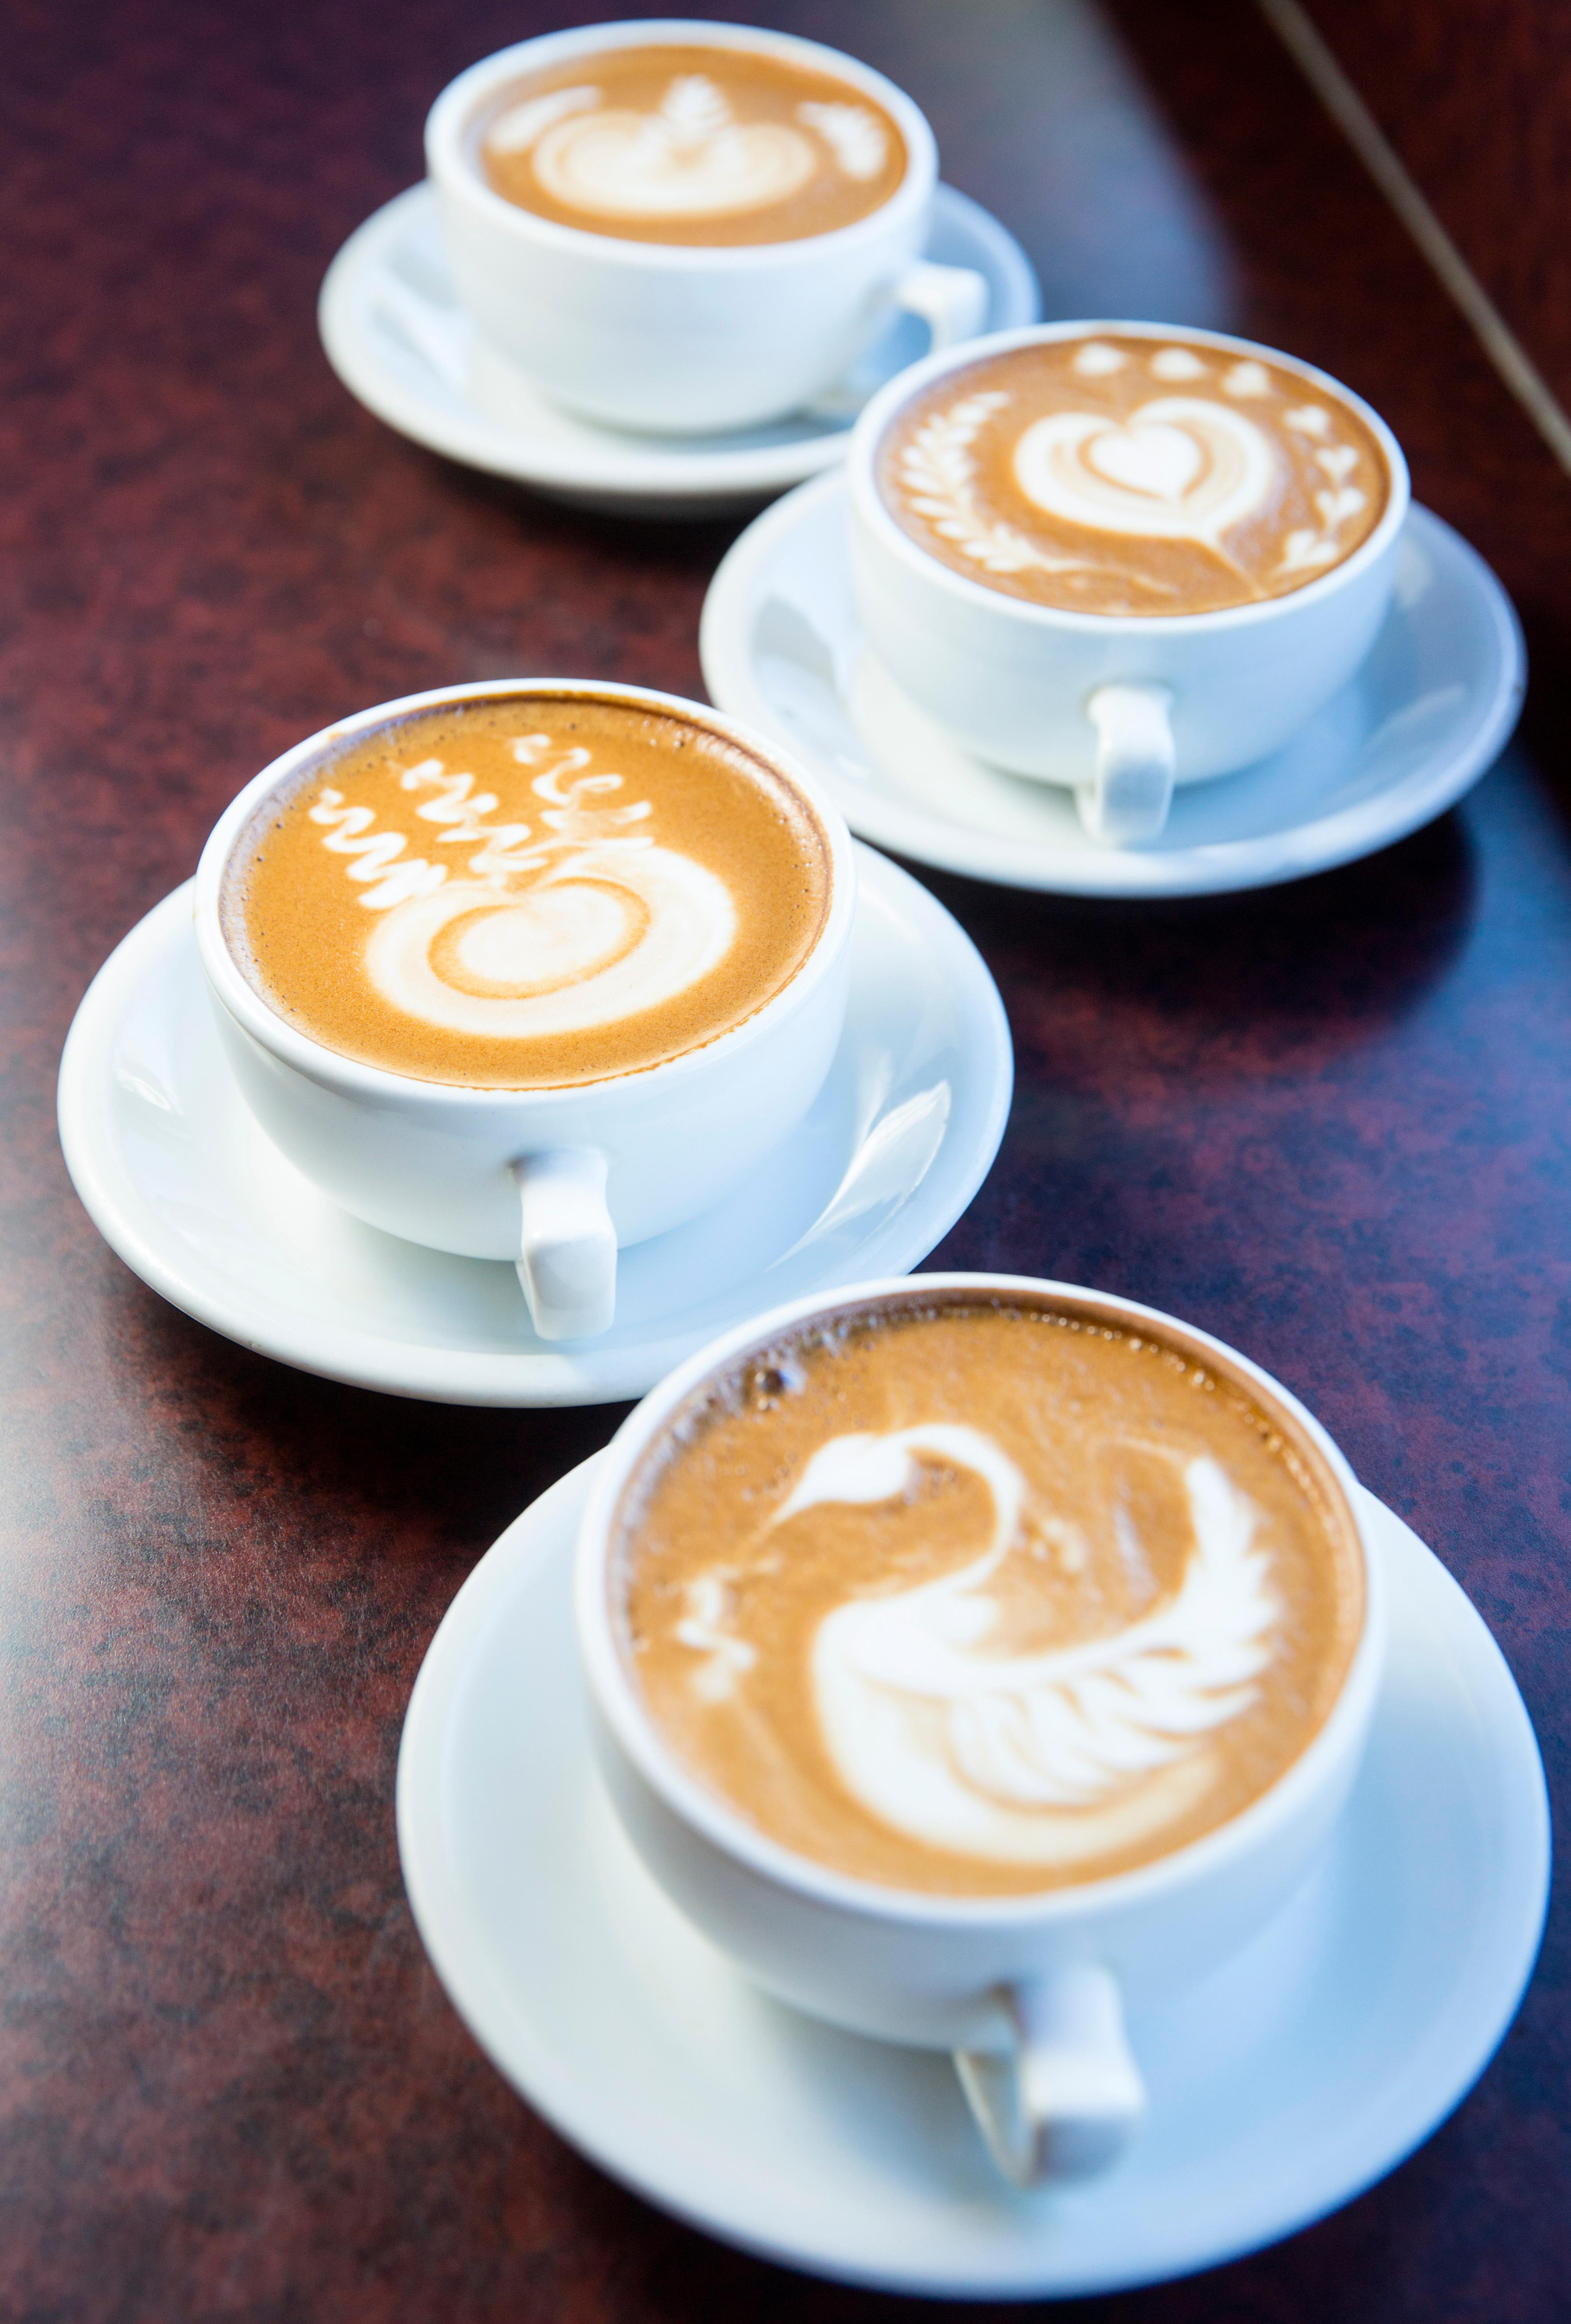 Owner James Ly and barista Taylor Westerlund whipped up a bunch of awesome latte designs for us at Caffe Zingaro, located at 127 Mercer St. Thanks to the feedback by our social media followers, this location was chosen for its latte art! Happy National Coffee Day! (Sy Bean / Seattle Refined)